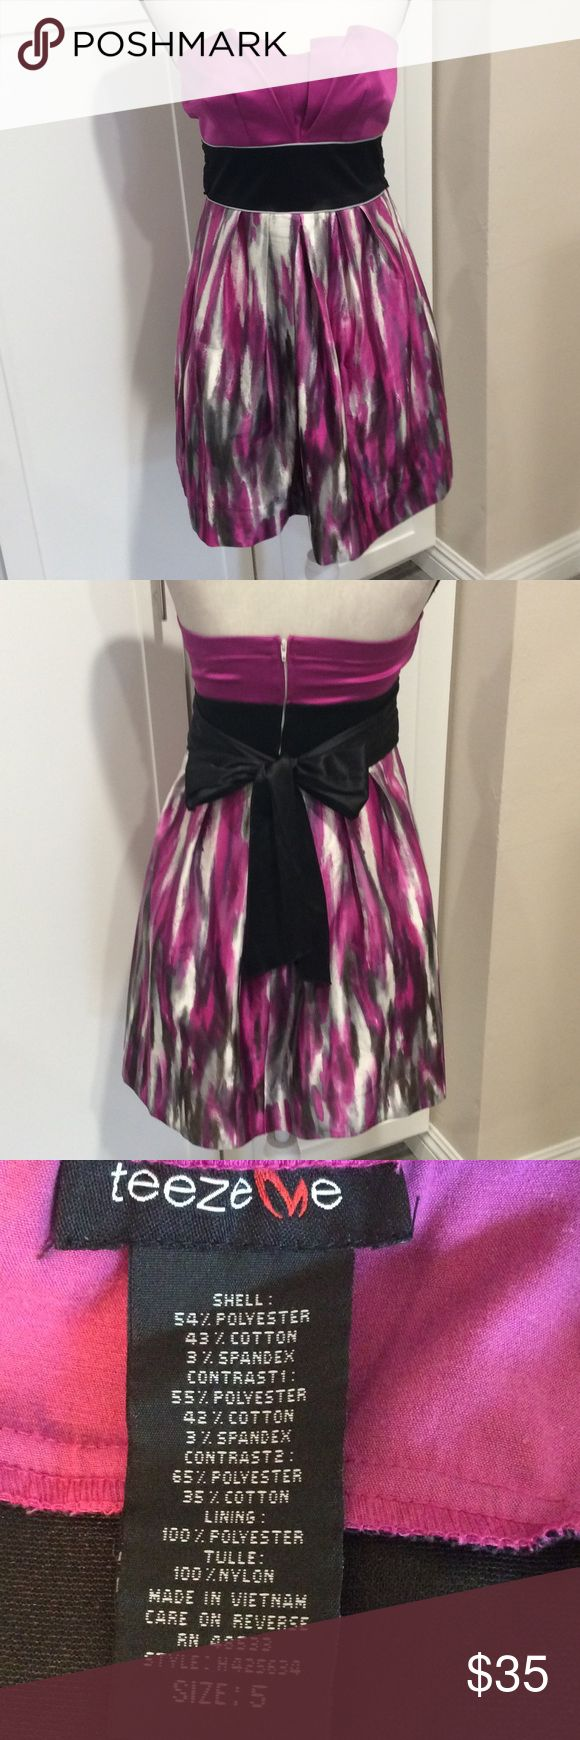 Beautiful strapless party dress This dress is tight on top w pleats ties on back skirt is not fitted and also has pleats Tweeze me Dresses Strapless